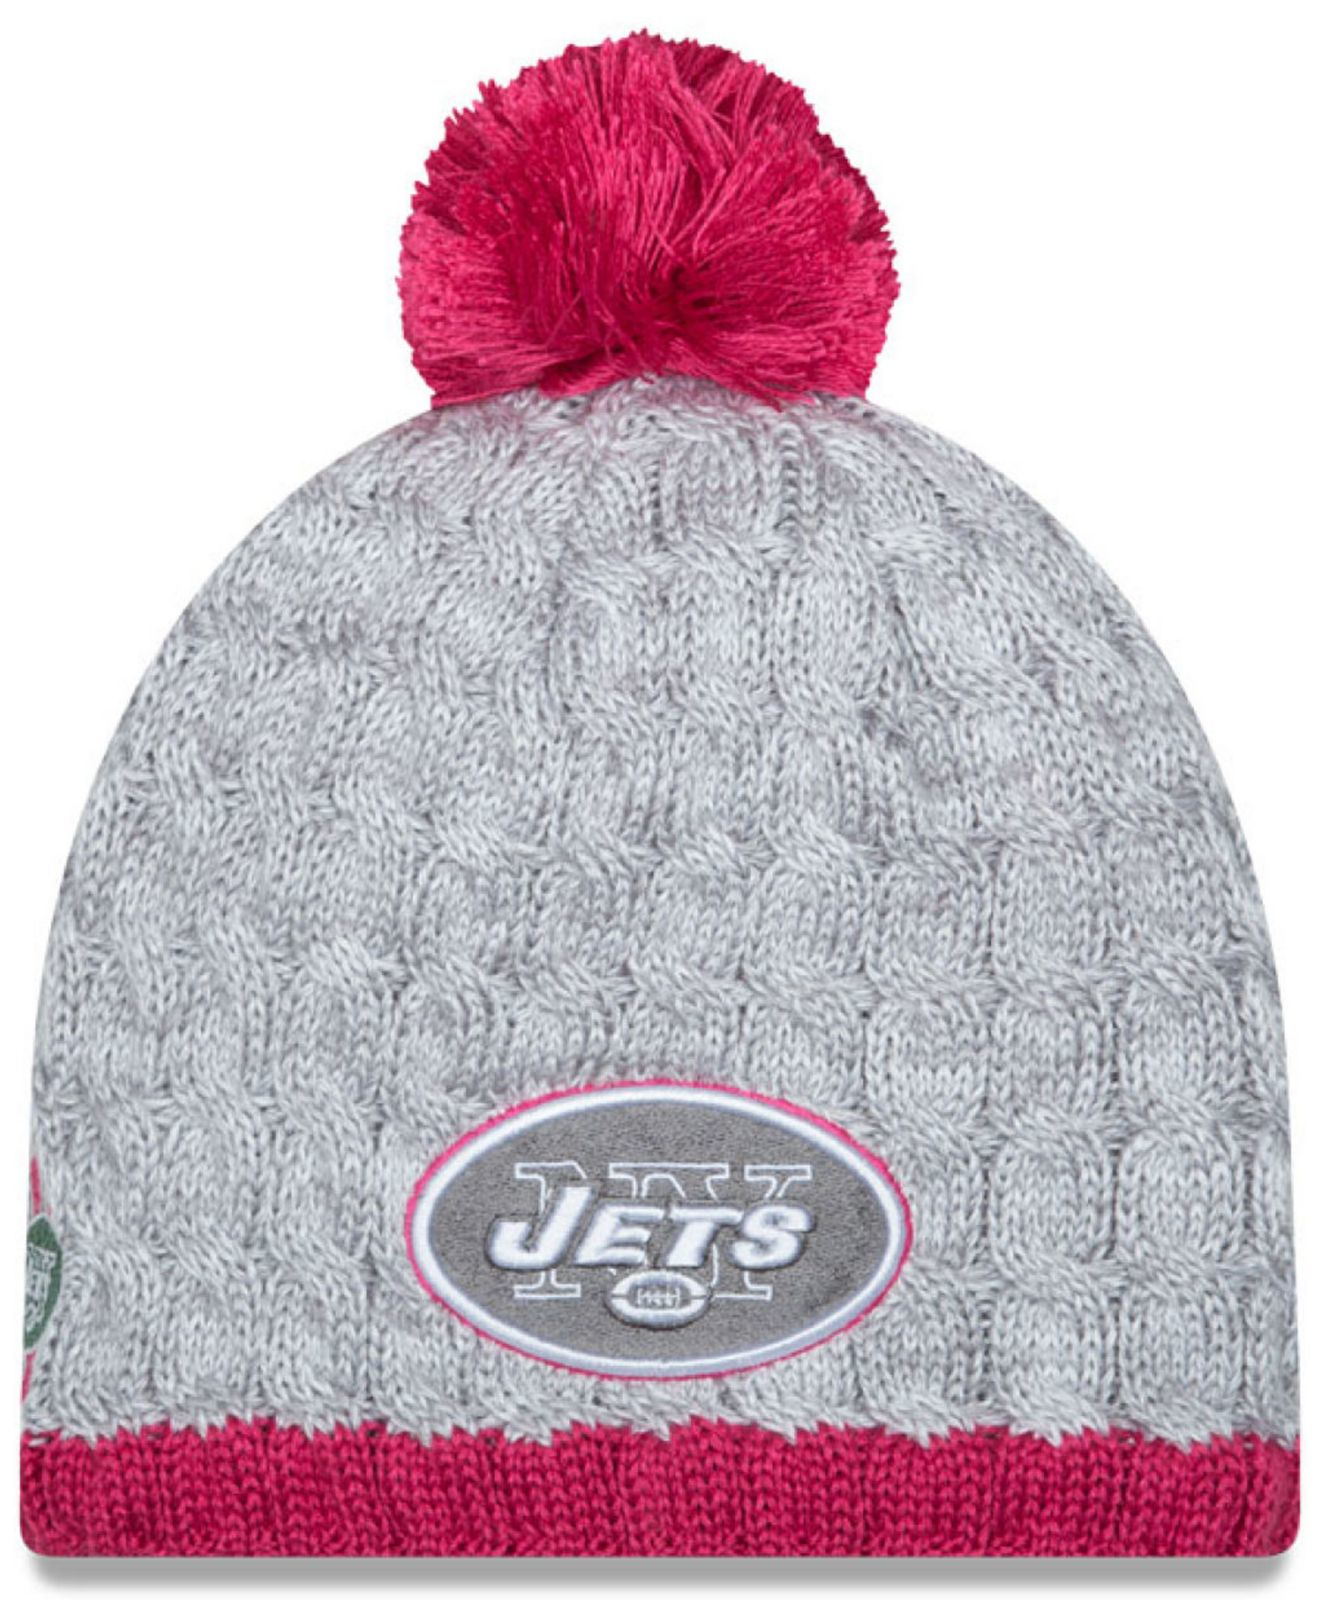 b173b0c4f ... inexpensive lyst ktz womens new york jets breast cancer awareness knit  hat in 19e67 3cf07